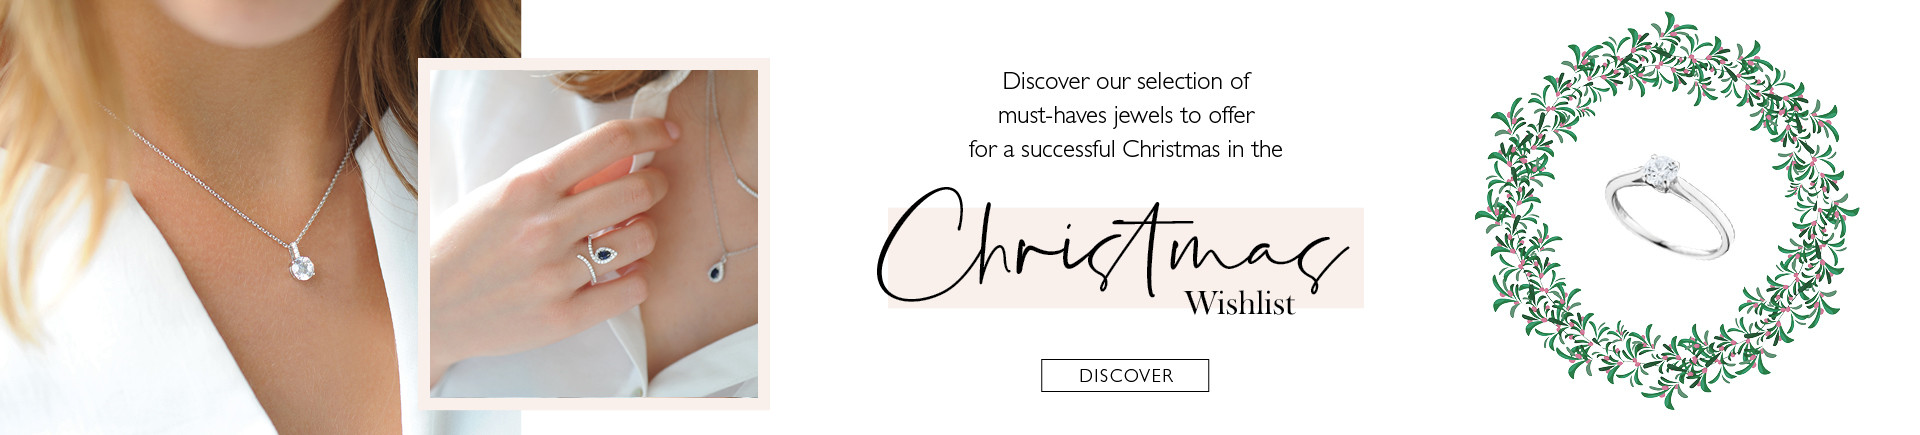 The Christmas wishlist with a selection of must-haves!